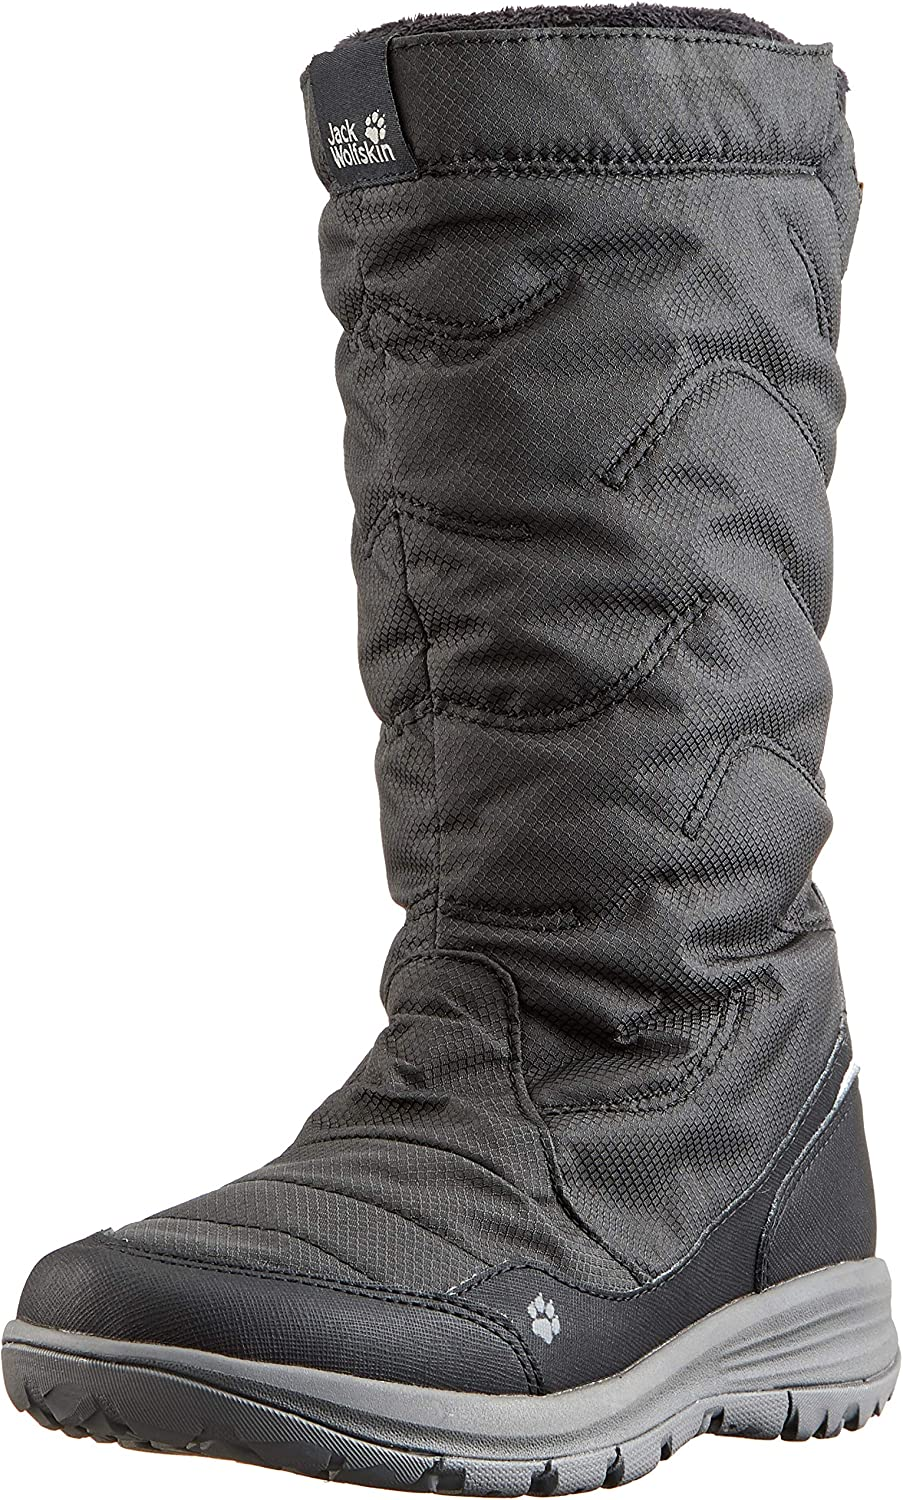 Jack Wolfskin Womens Vancouver Texapore Boot W Women's Waterproof -4°f Insulated Casual Winter Boot Snow Boot